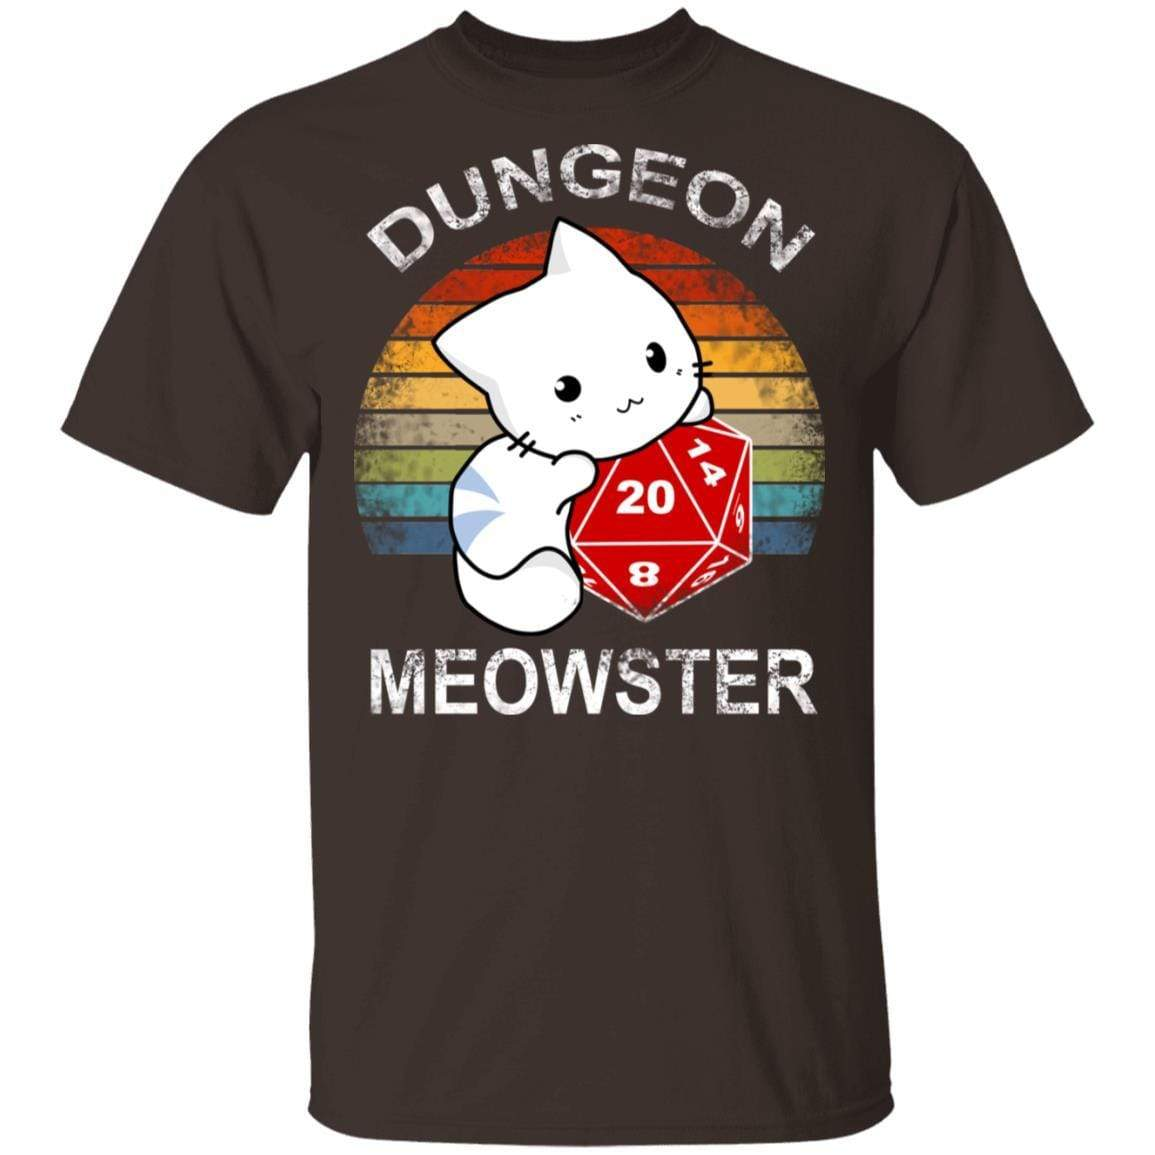 Dungeon Meowster Retro Vintage Funny Cat T-Shirts, Hoodies 1049-9956-90279036-48152 - Tee Ript